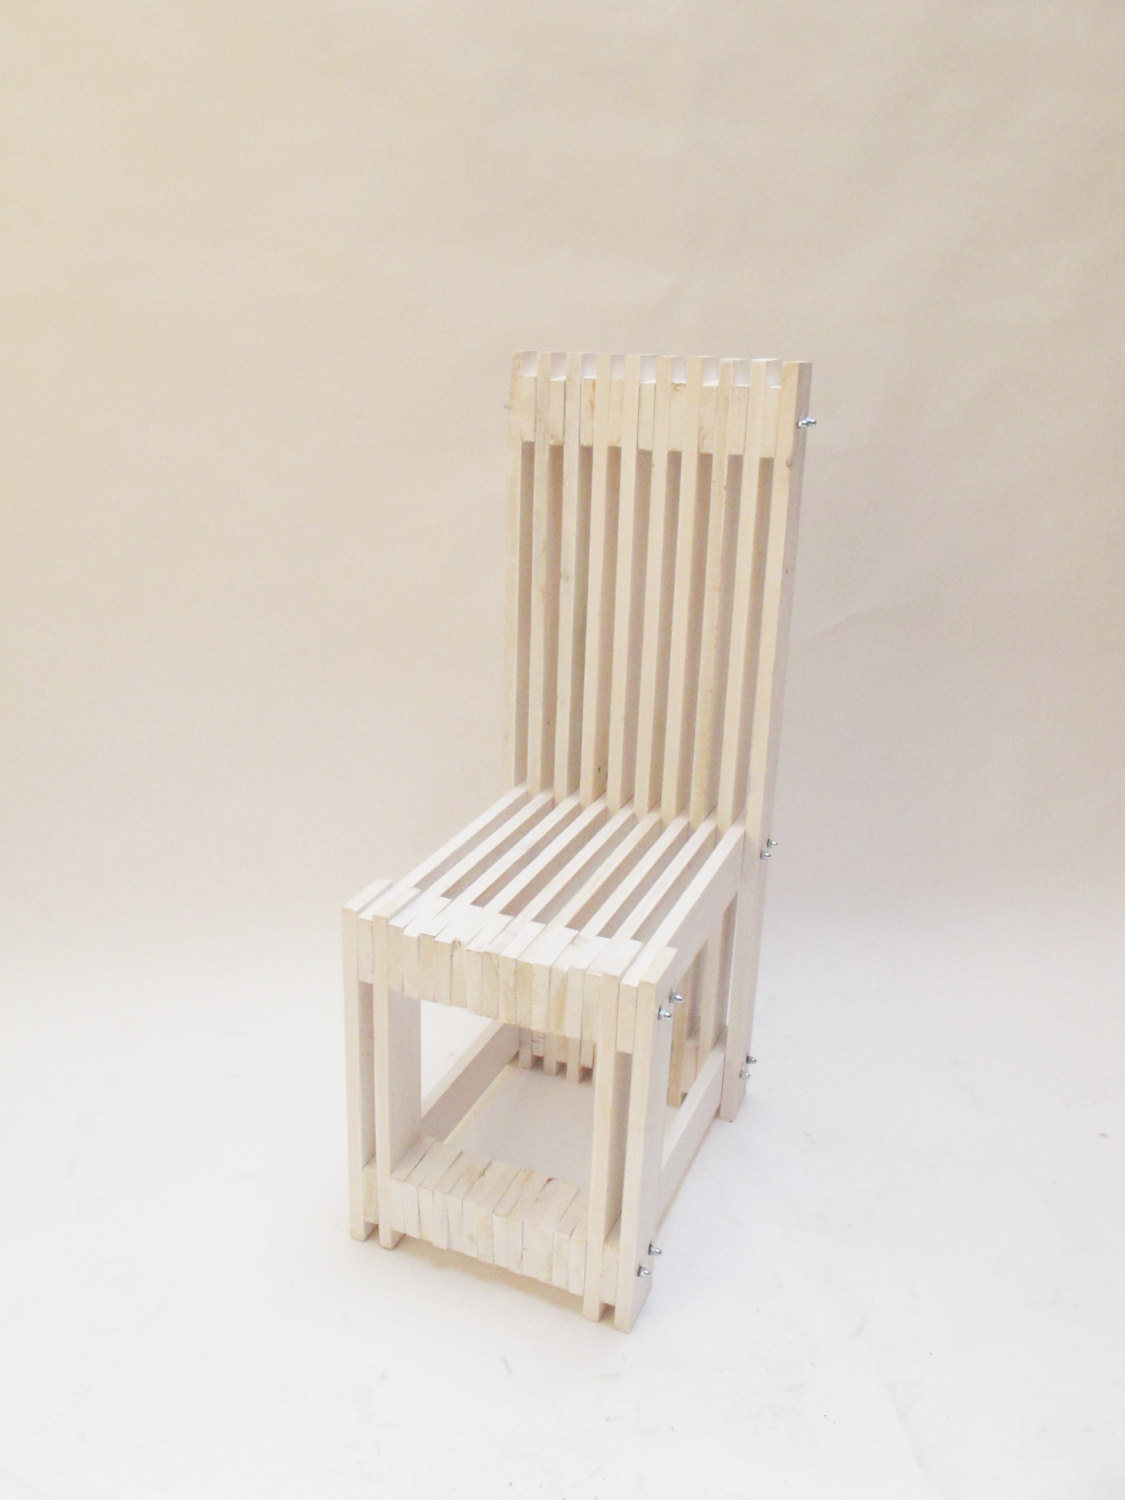 4 Pallet Chair white handcrafted by order